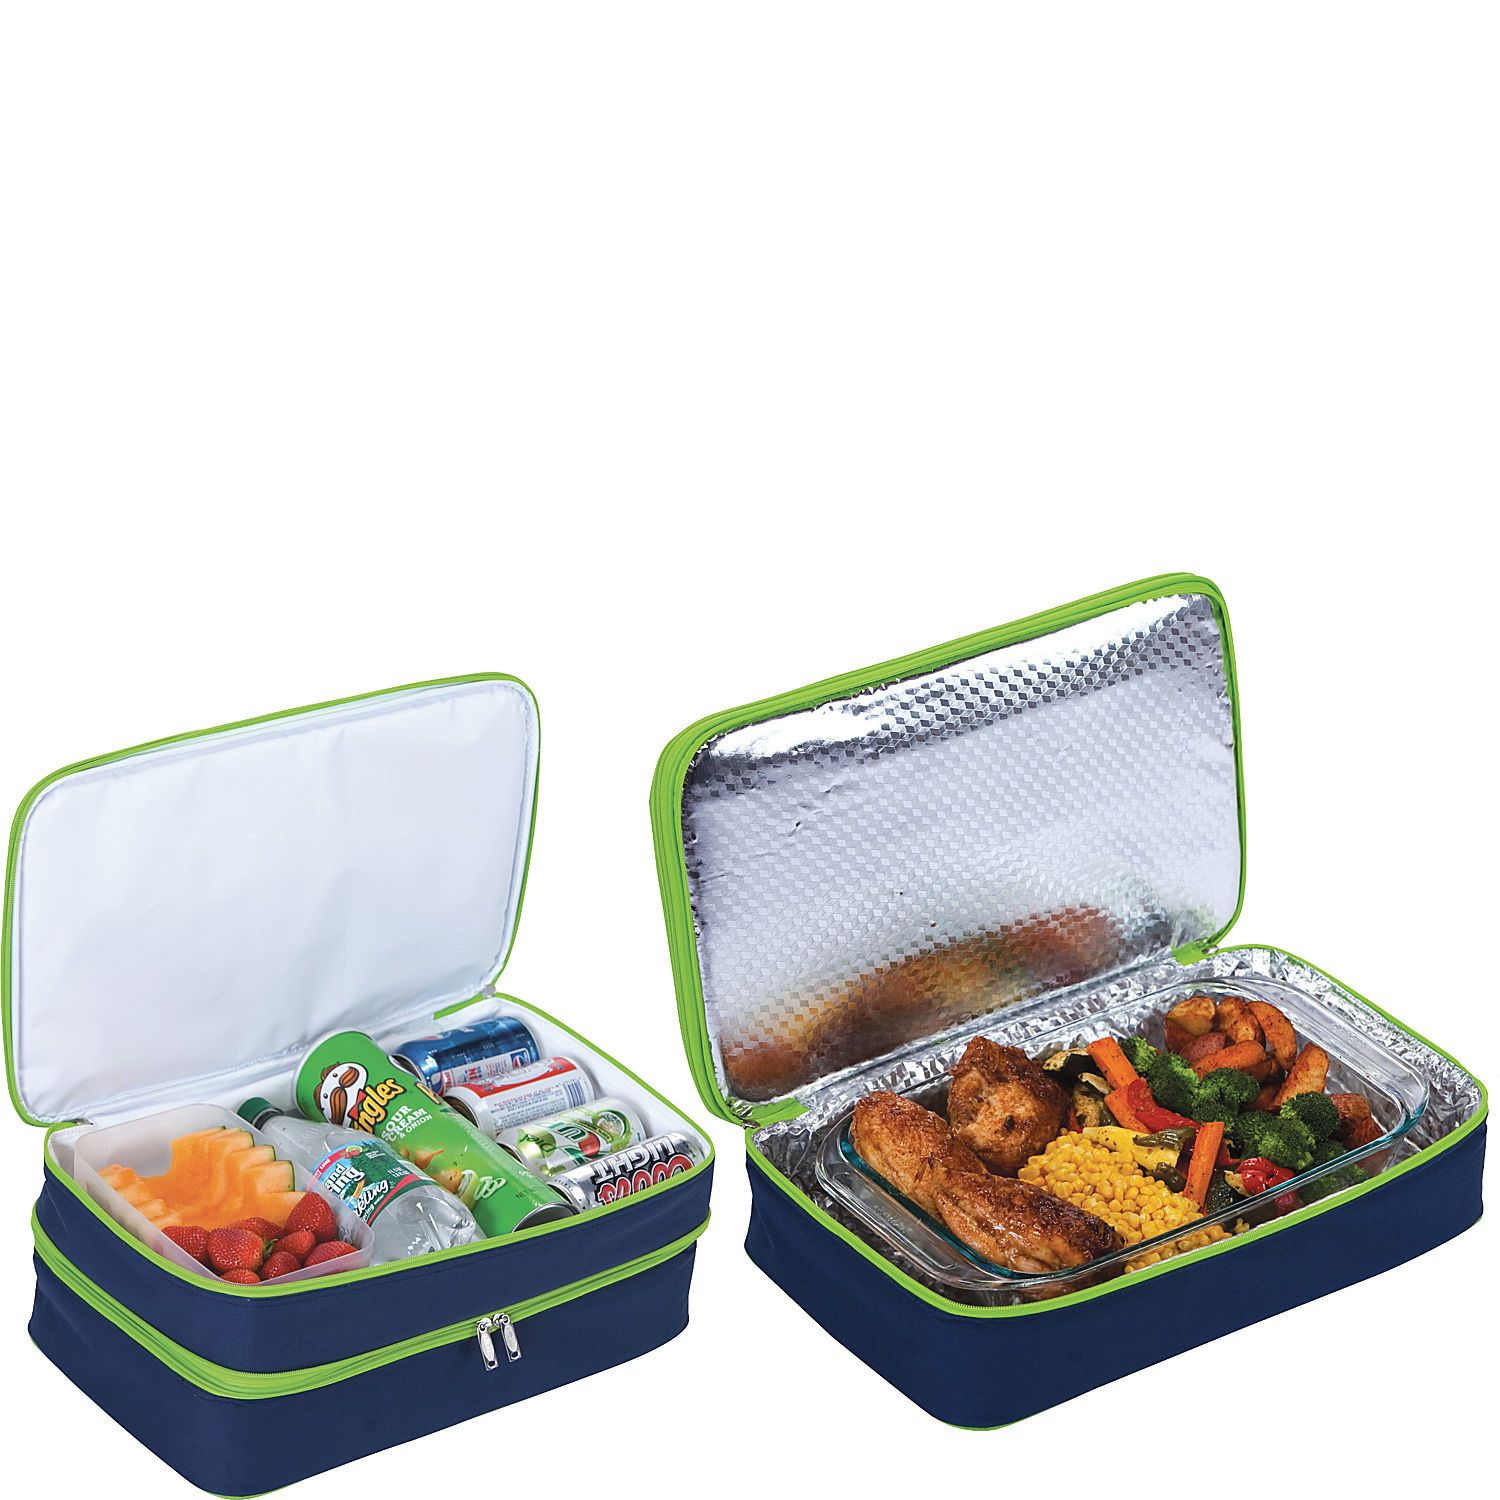 Picnic Plus Entertainer Hot Amp Cold Food Carrier